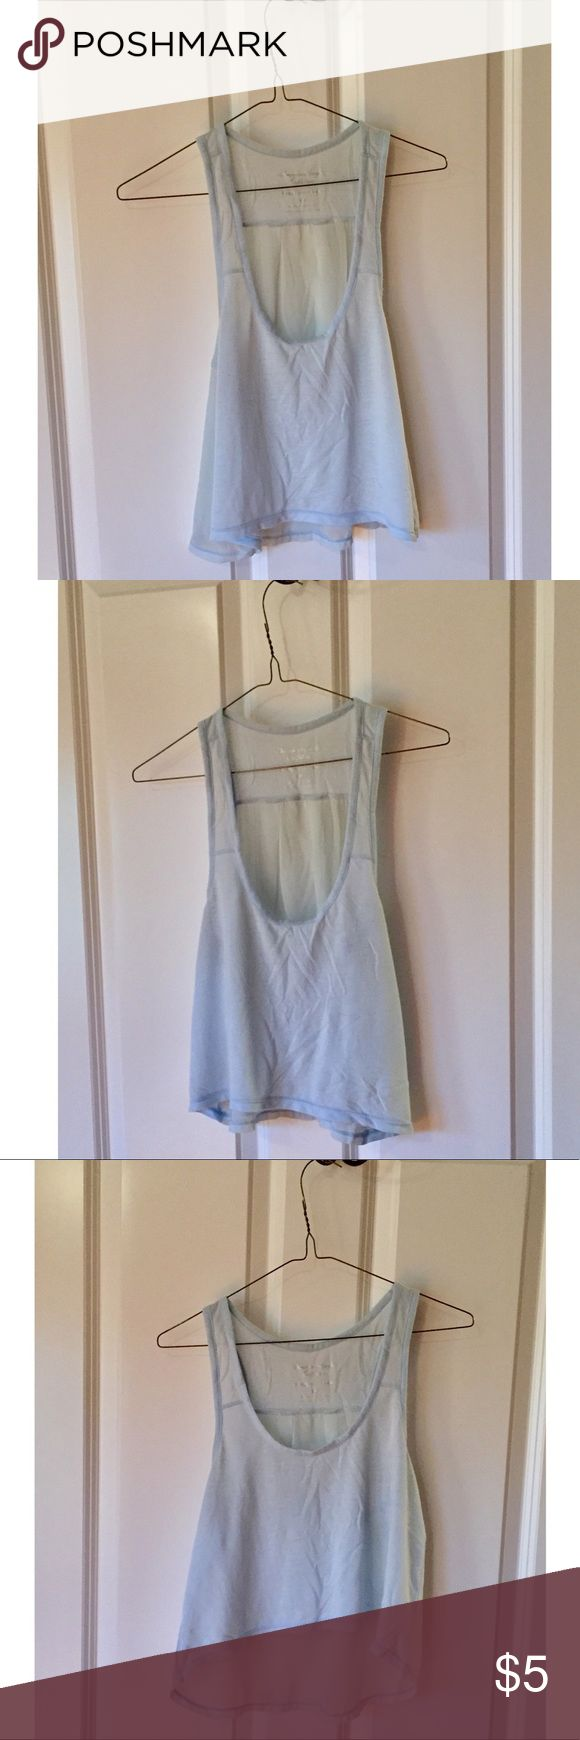 American Eagle Outfitters. Blue Happy Hour Tank American Eagle Outfitters. Light Blue Happy Hour Tank Top. Size: S/P. Material: Front: Soft Jersey cotton. Back: 100% RAYON. This top got its name for a reason—flirty and super cute with a baby doll feel! Sexy sheer back. Regardless of where you wear it—out on a Friday night or to an awesome concert—you're going to turn heads in this top and have lots of fun! Some of the best times and most cherished memories... 💙 American Eagle Outfitters…